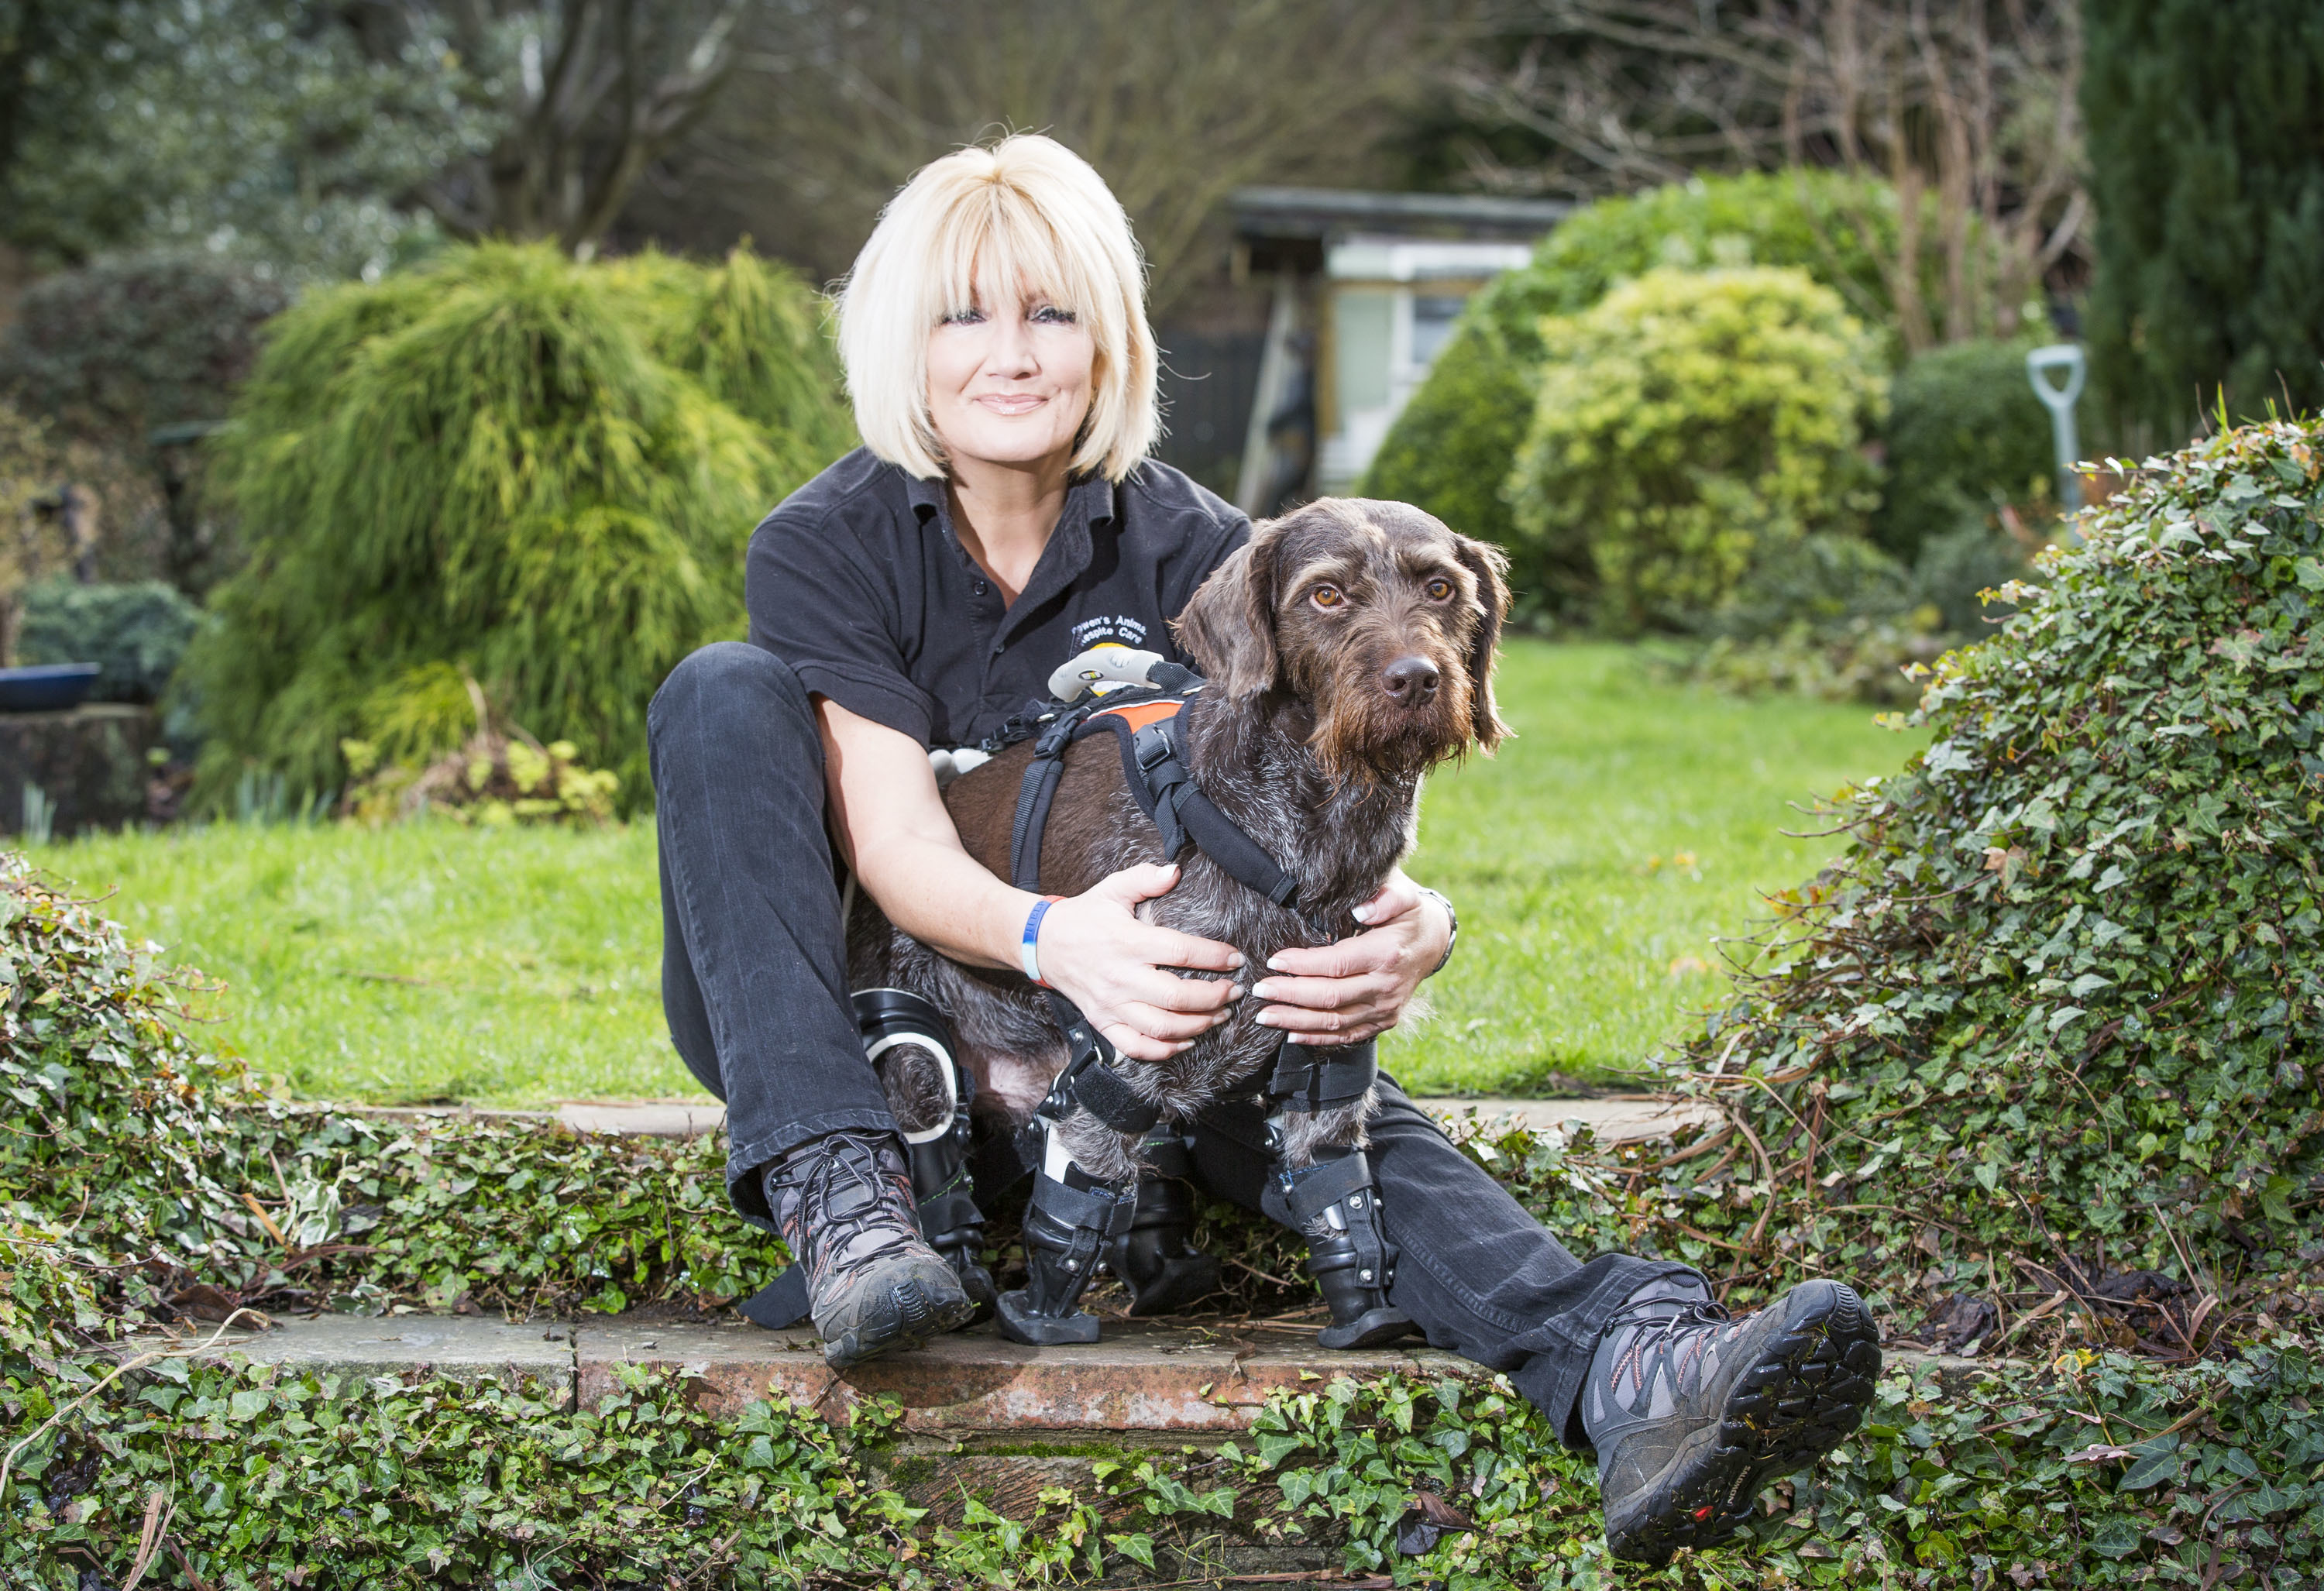 Fife's bionic dog Dillon with owner Lyn Johnston.